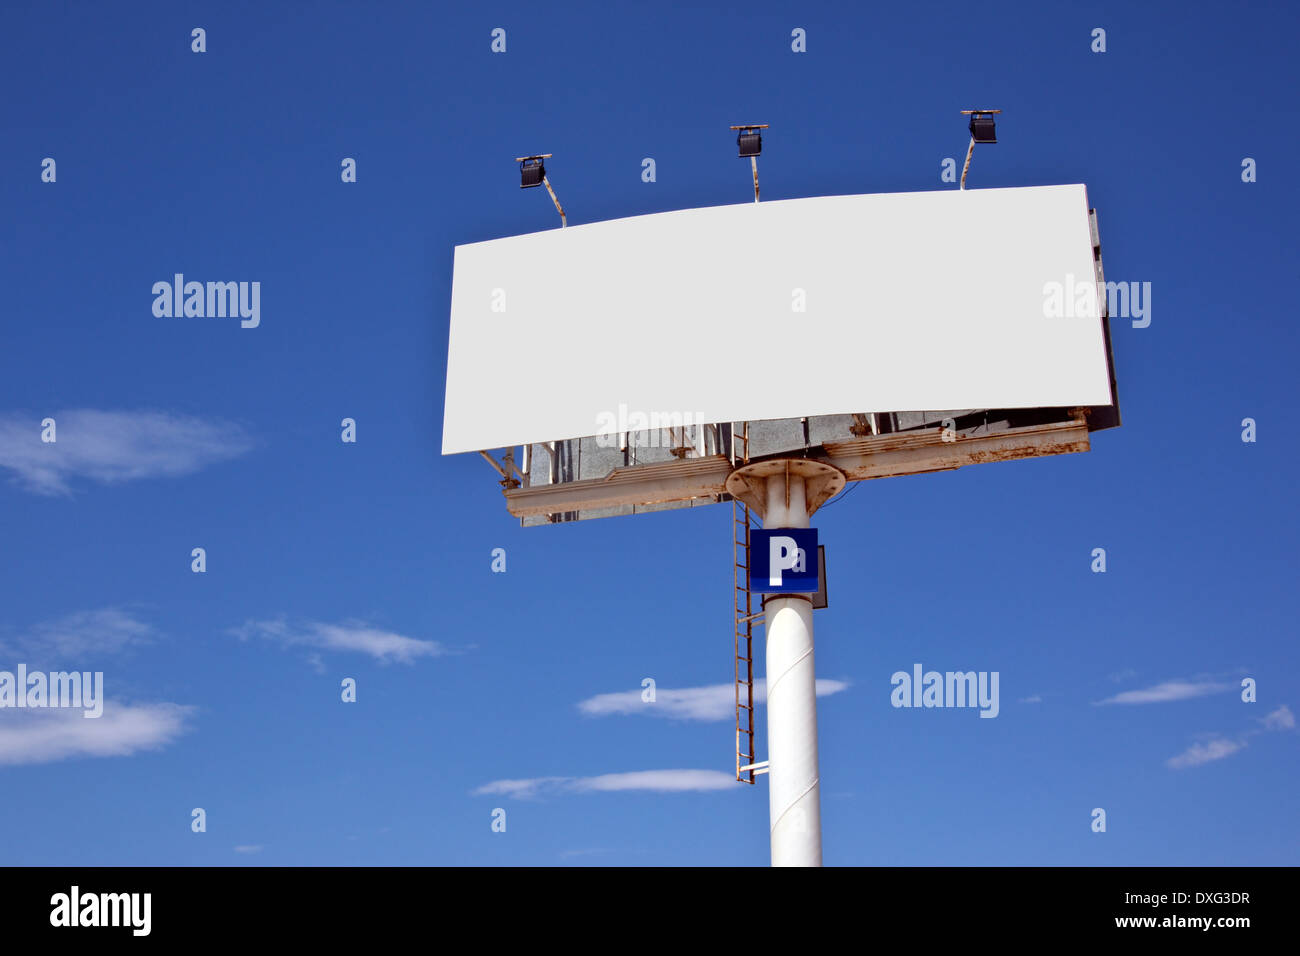 Blank advertising sign - Add your text or image to this space. - Stock Image